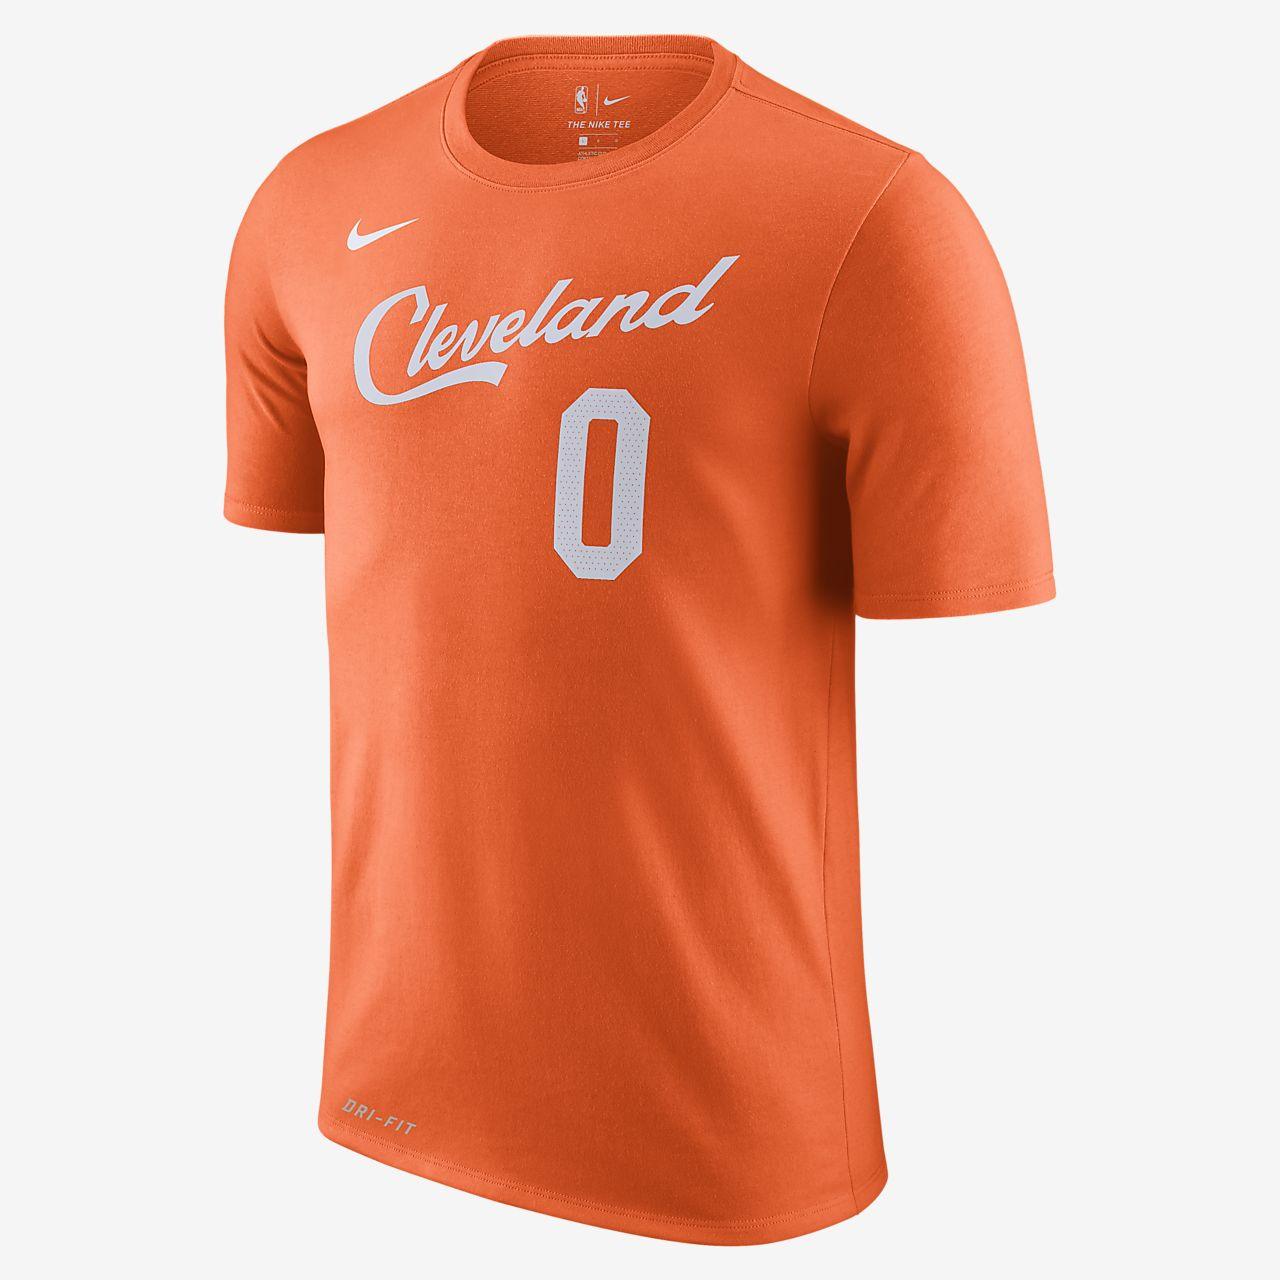 d787fdca3 Kevin Love Cleveland Cavaliers City Edition Nike Dri-FIT Men s NBA T ...